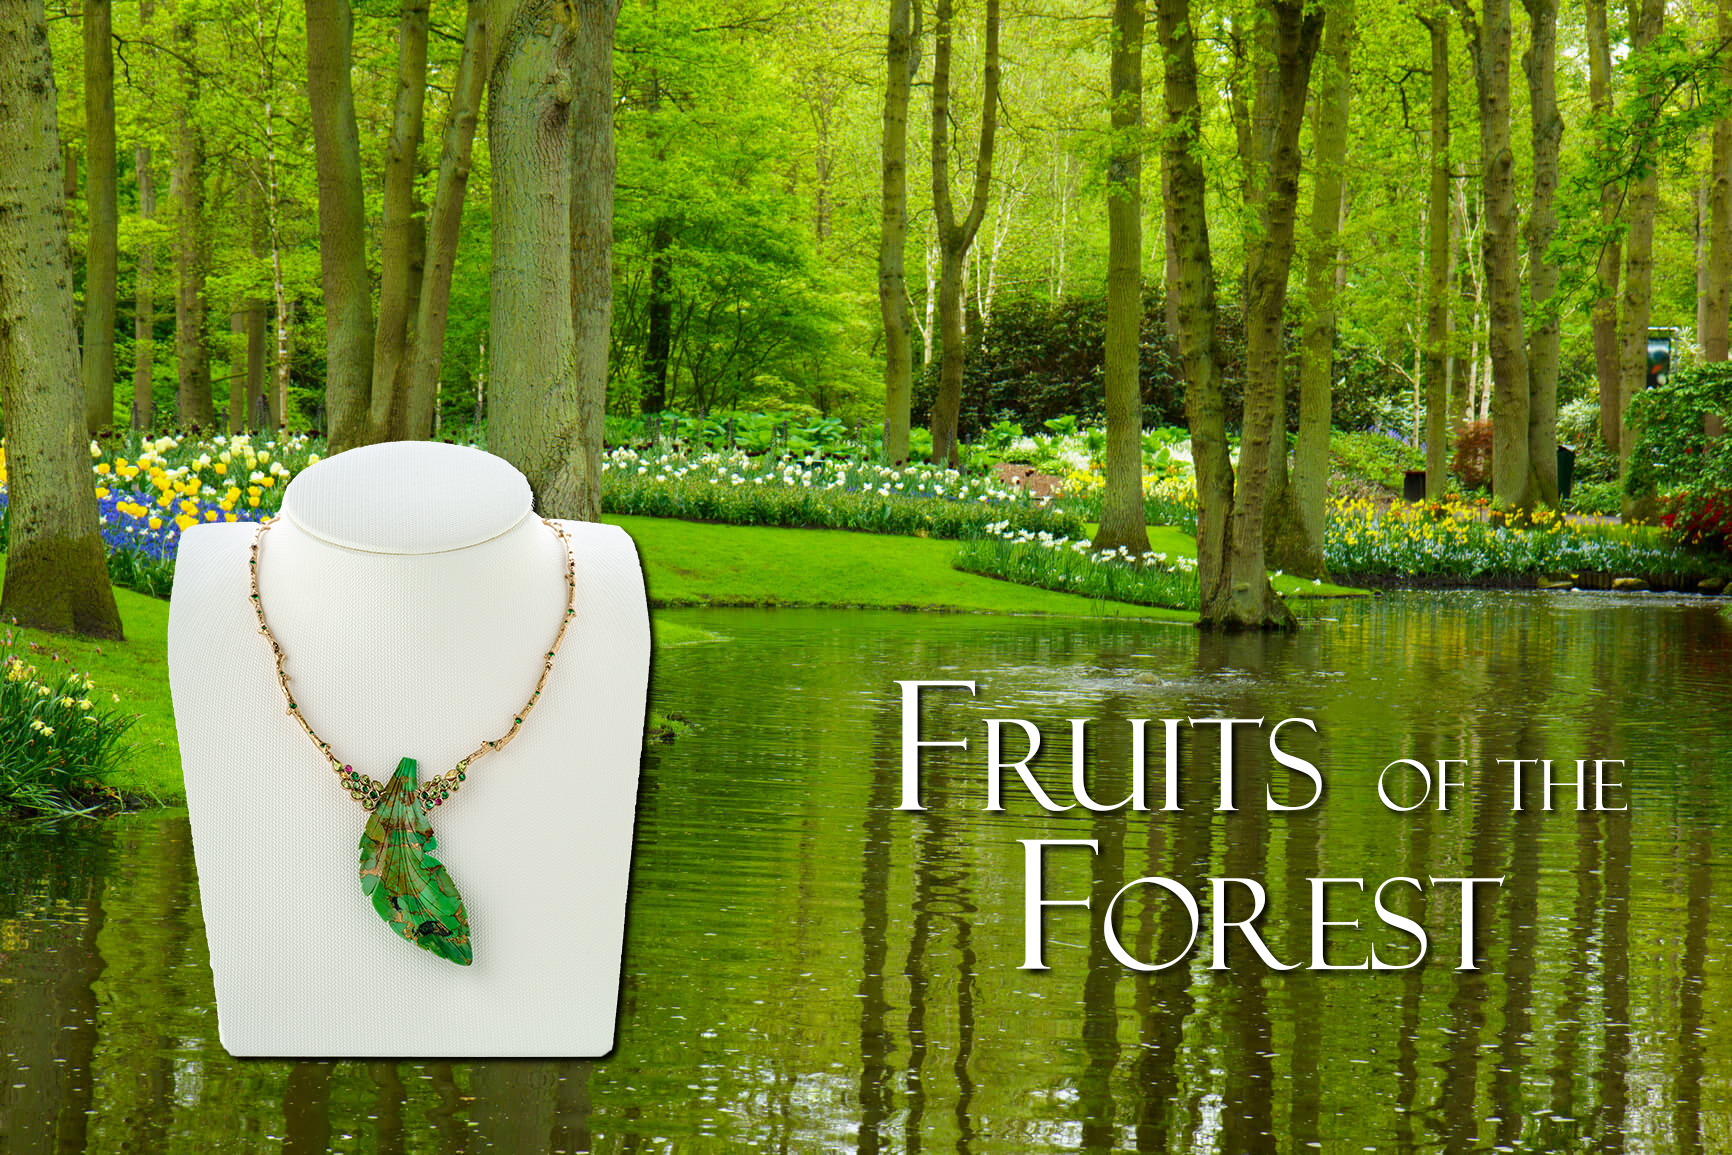 Jaime-Moreno-Art-in-Fine-Jewelry-Fruits-of-the-forest-Poster-C122